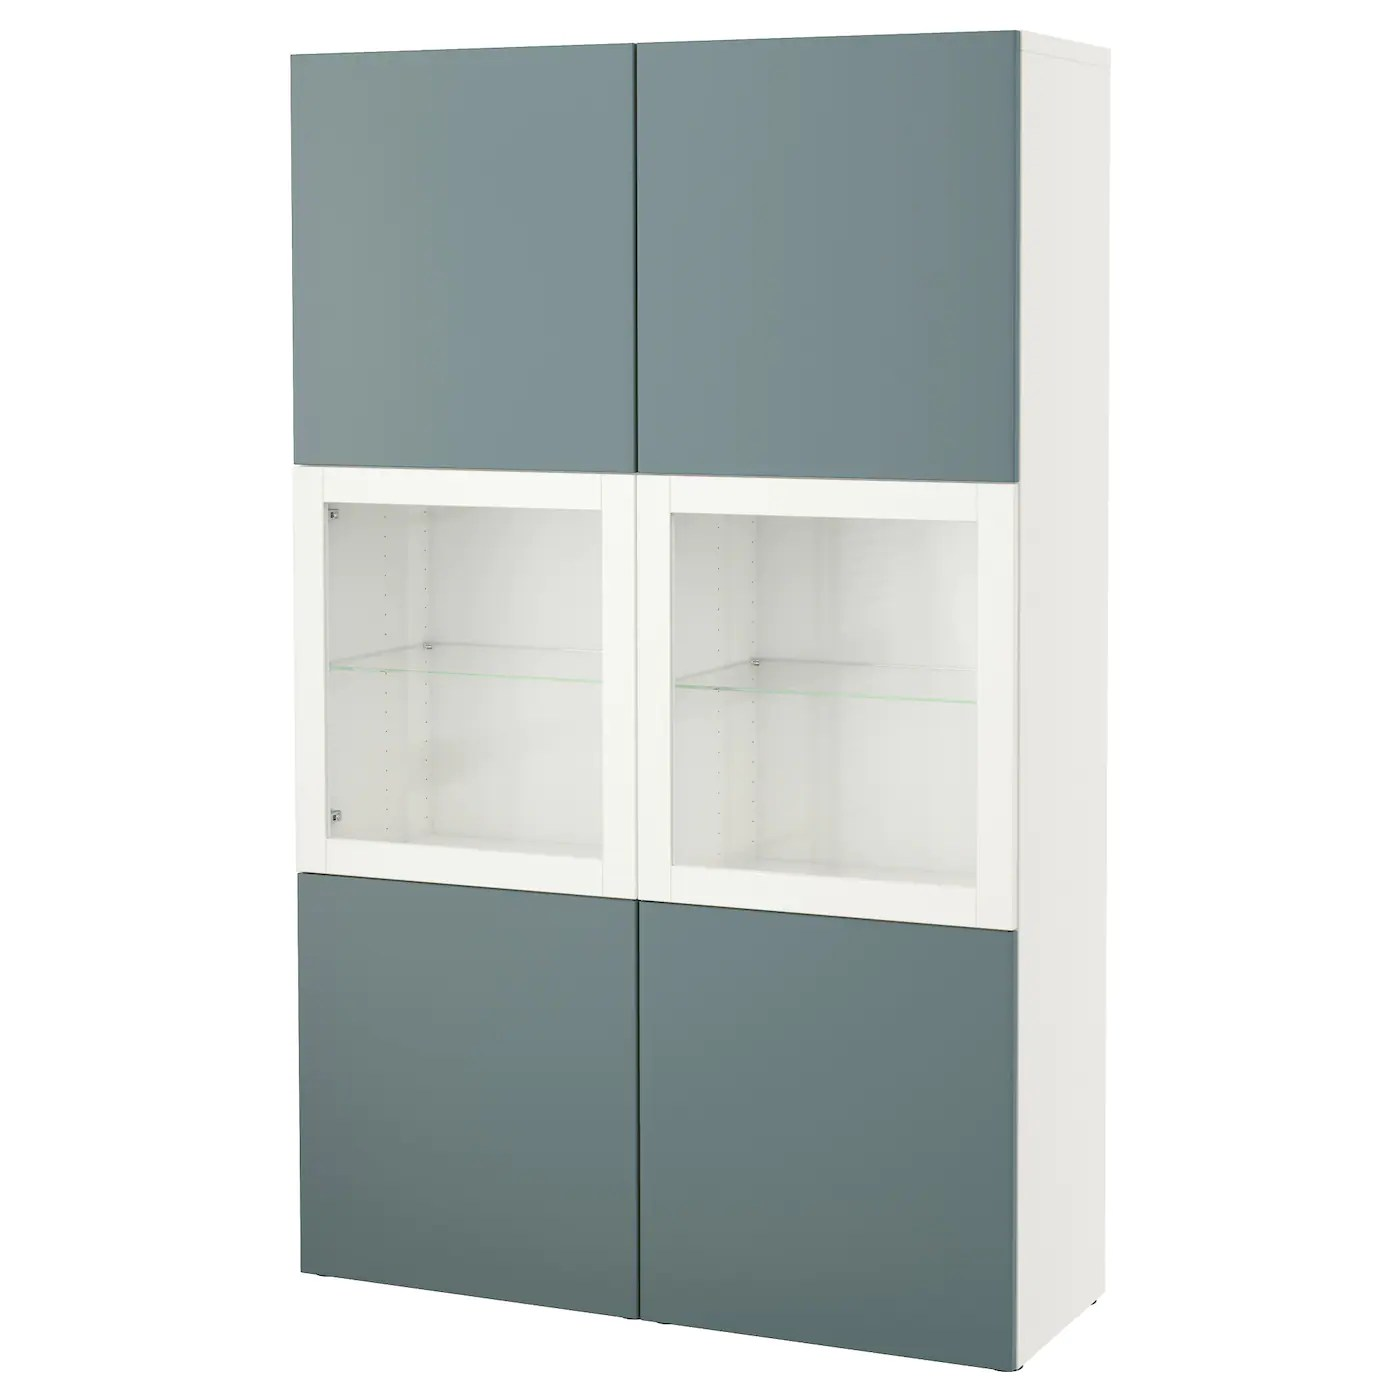 Ikea Cubes Shelving Units Cube Storage Ikea Ireland